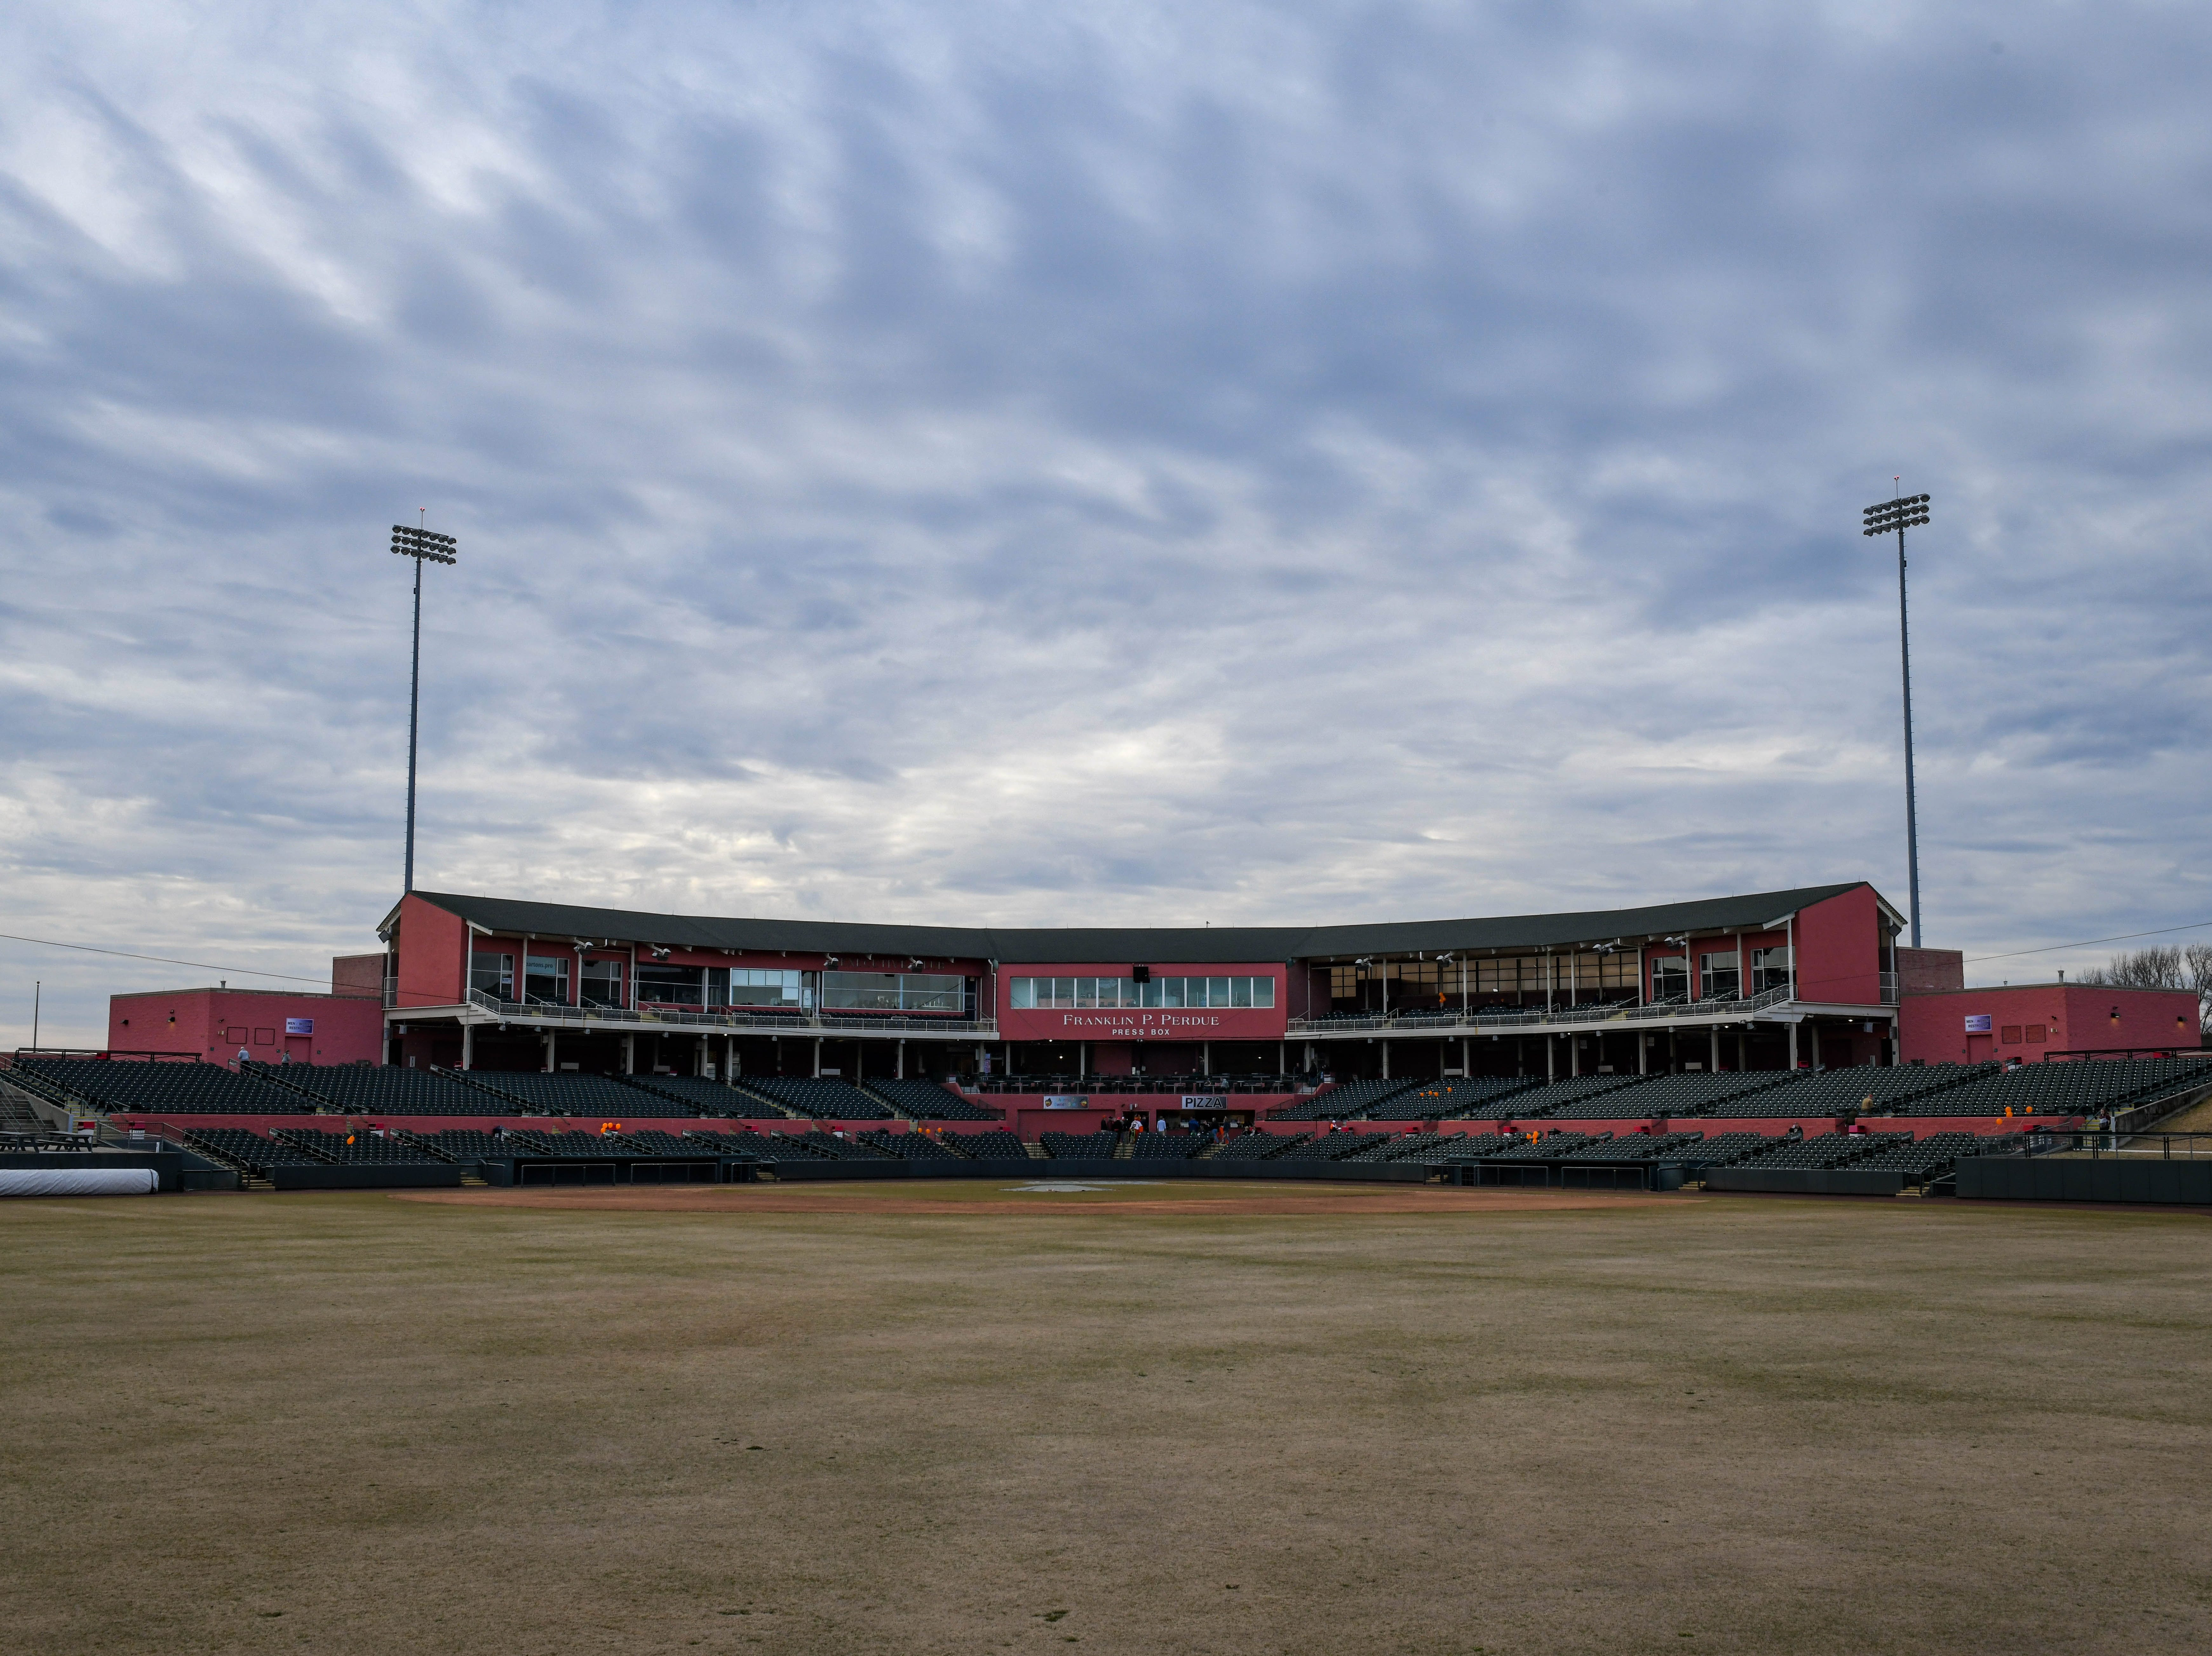 Perdue Stadium welcomed visitors at an open house event to tour the new boardwalk deck on Wednesday, Mach 13, 2019.